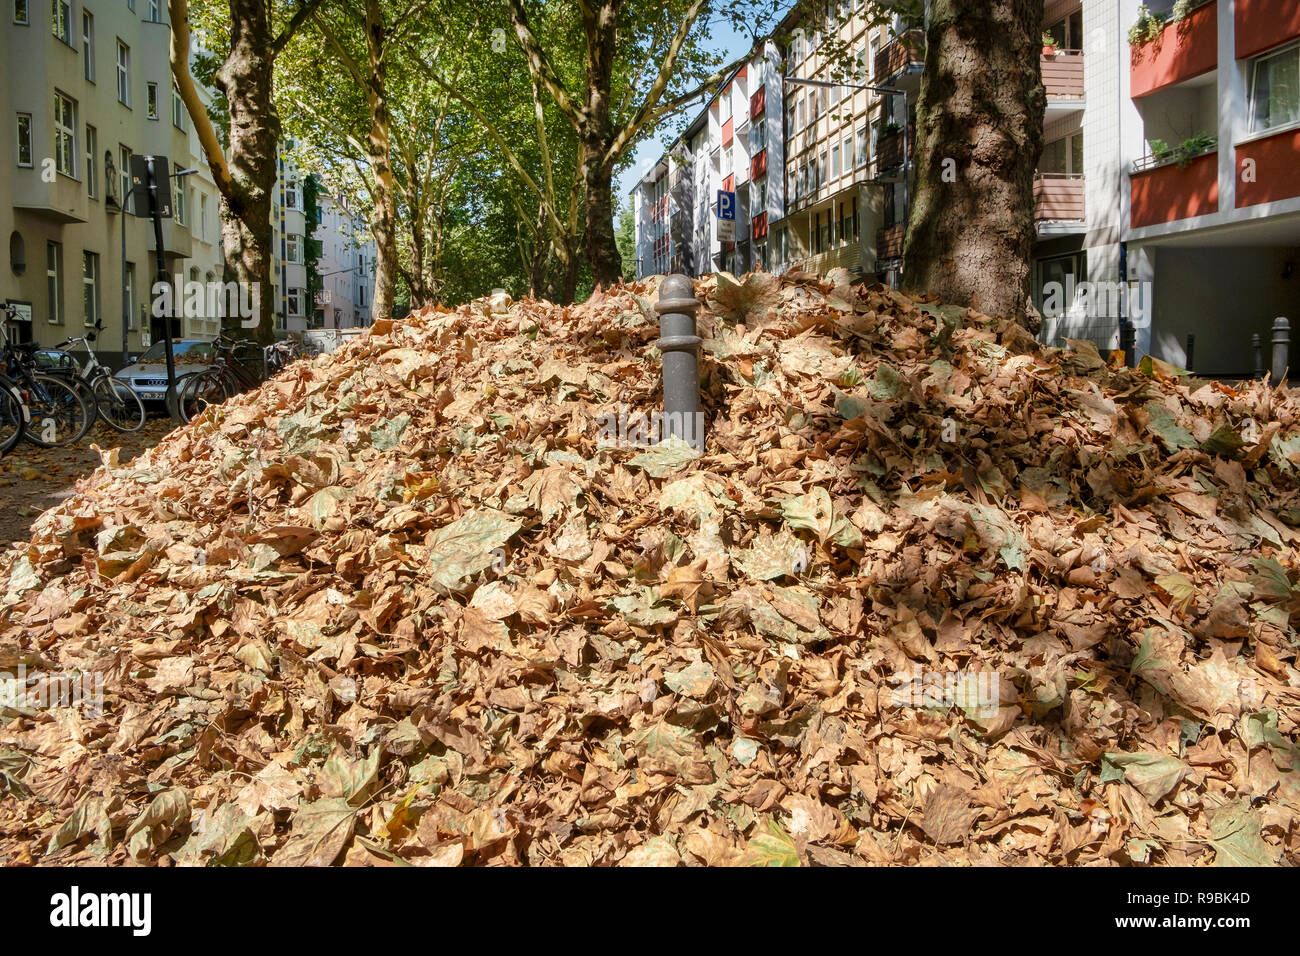 Autumn in August. In the extremely hot summer of 2018 Stock Photo